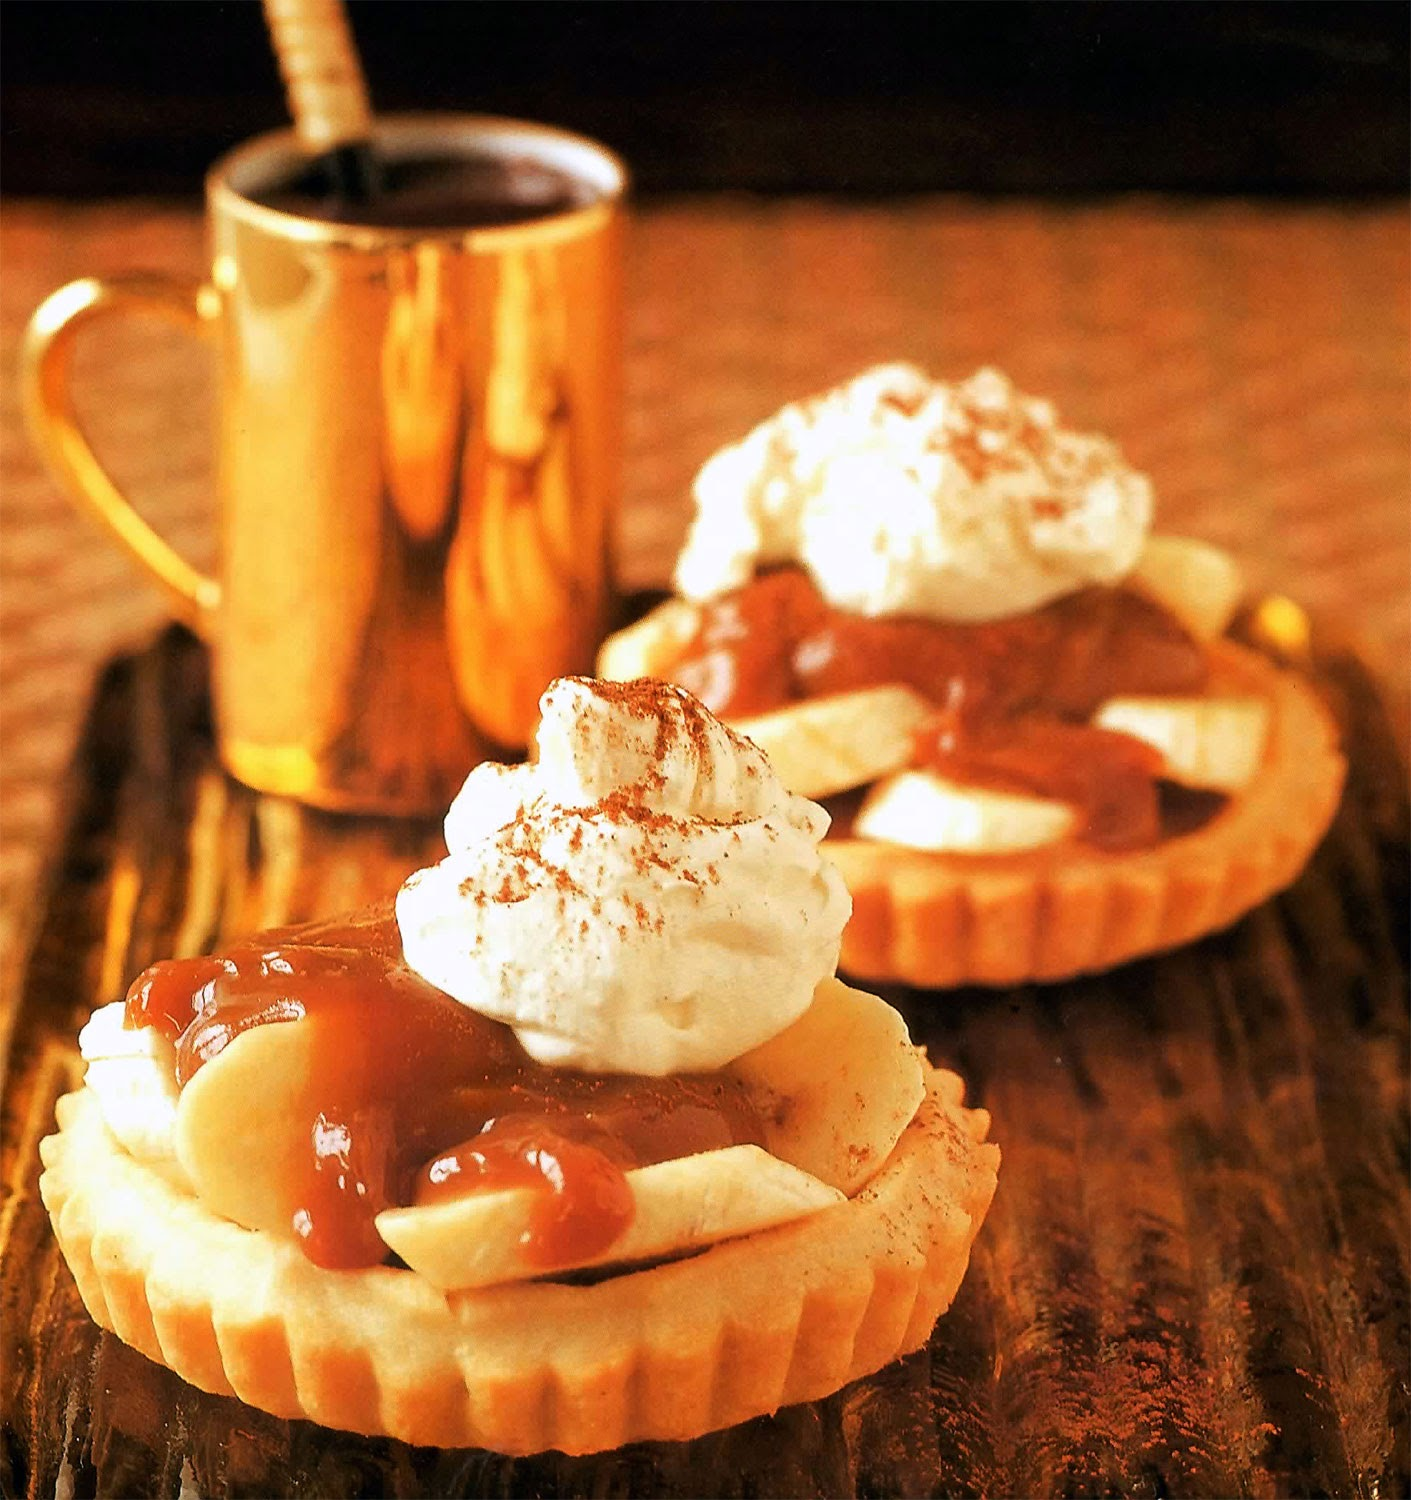 Banoffee Tarts Recipe: Miniature banoffee pies in a baked shortcrust shell, topped with whipped cream and fudge sauce